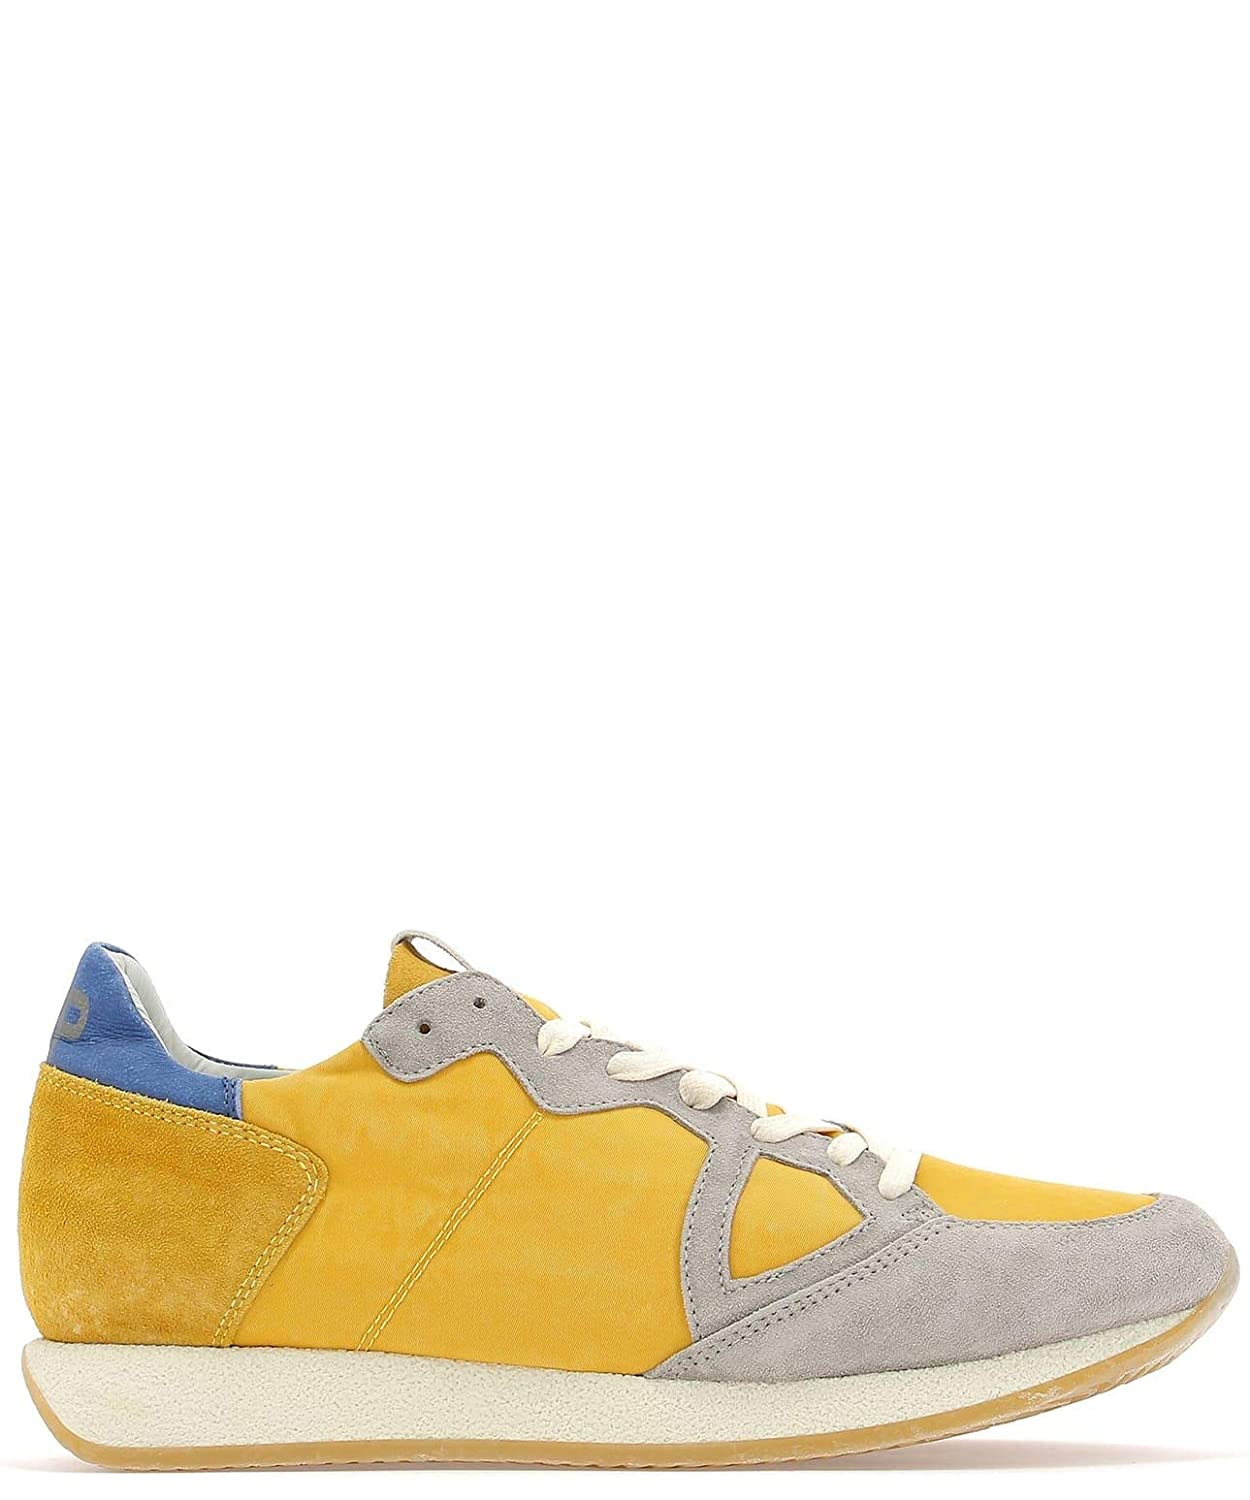 - PHILIPPE MODEL Men's MVLUSY03 Yellow Suede Sneakers